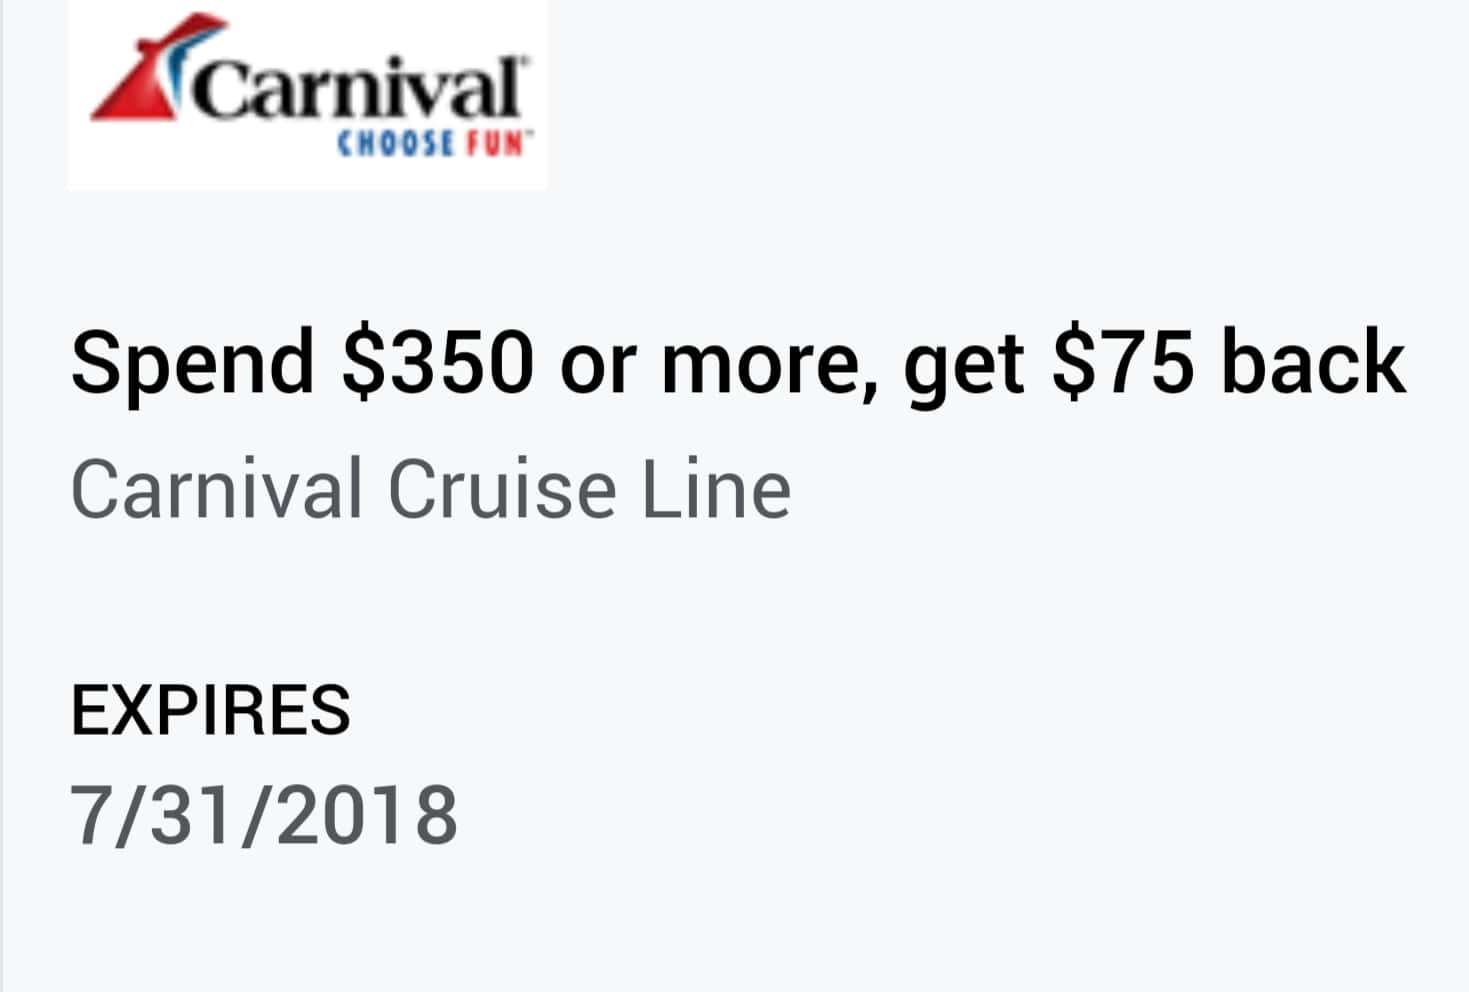 Amex Offers: Carnival Cruise Line 75 Off 350+ YMMV $350